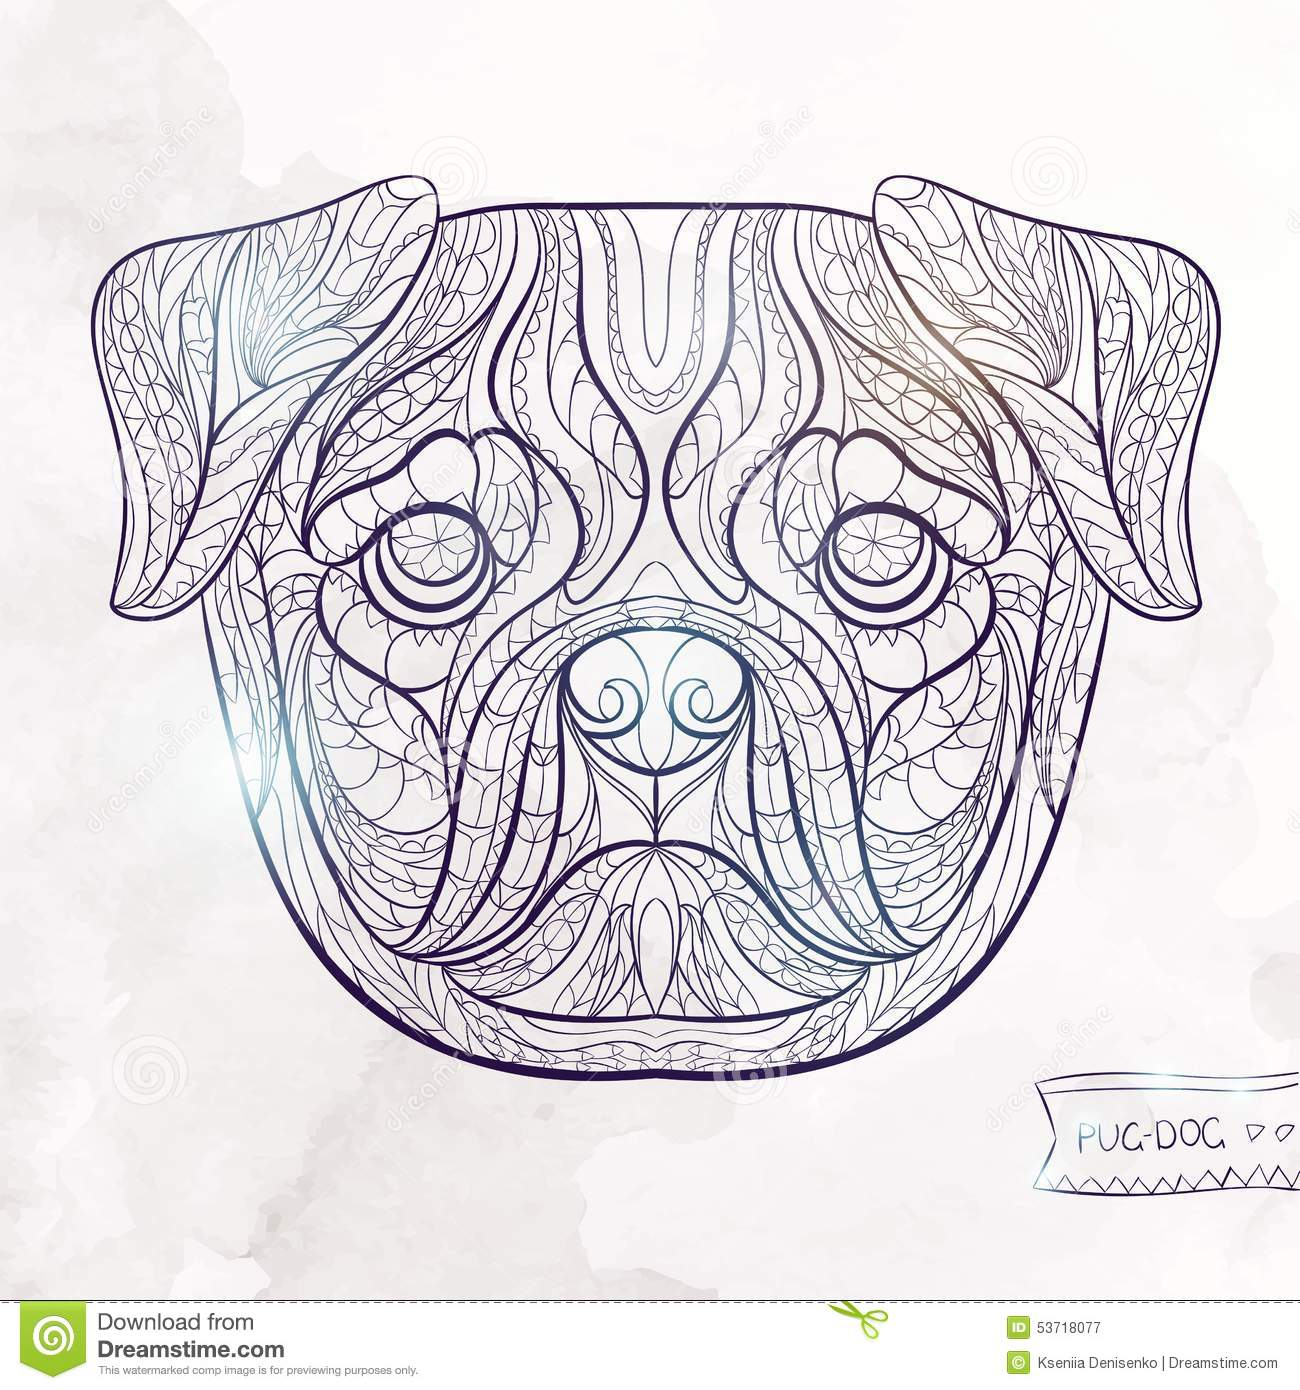 Ethnic Patterned Head Of Pug Dog Stock Vector Image